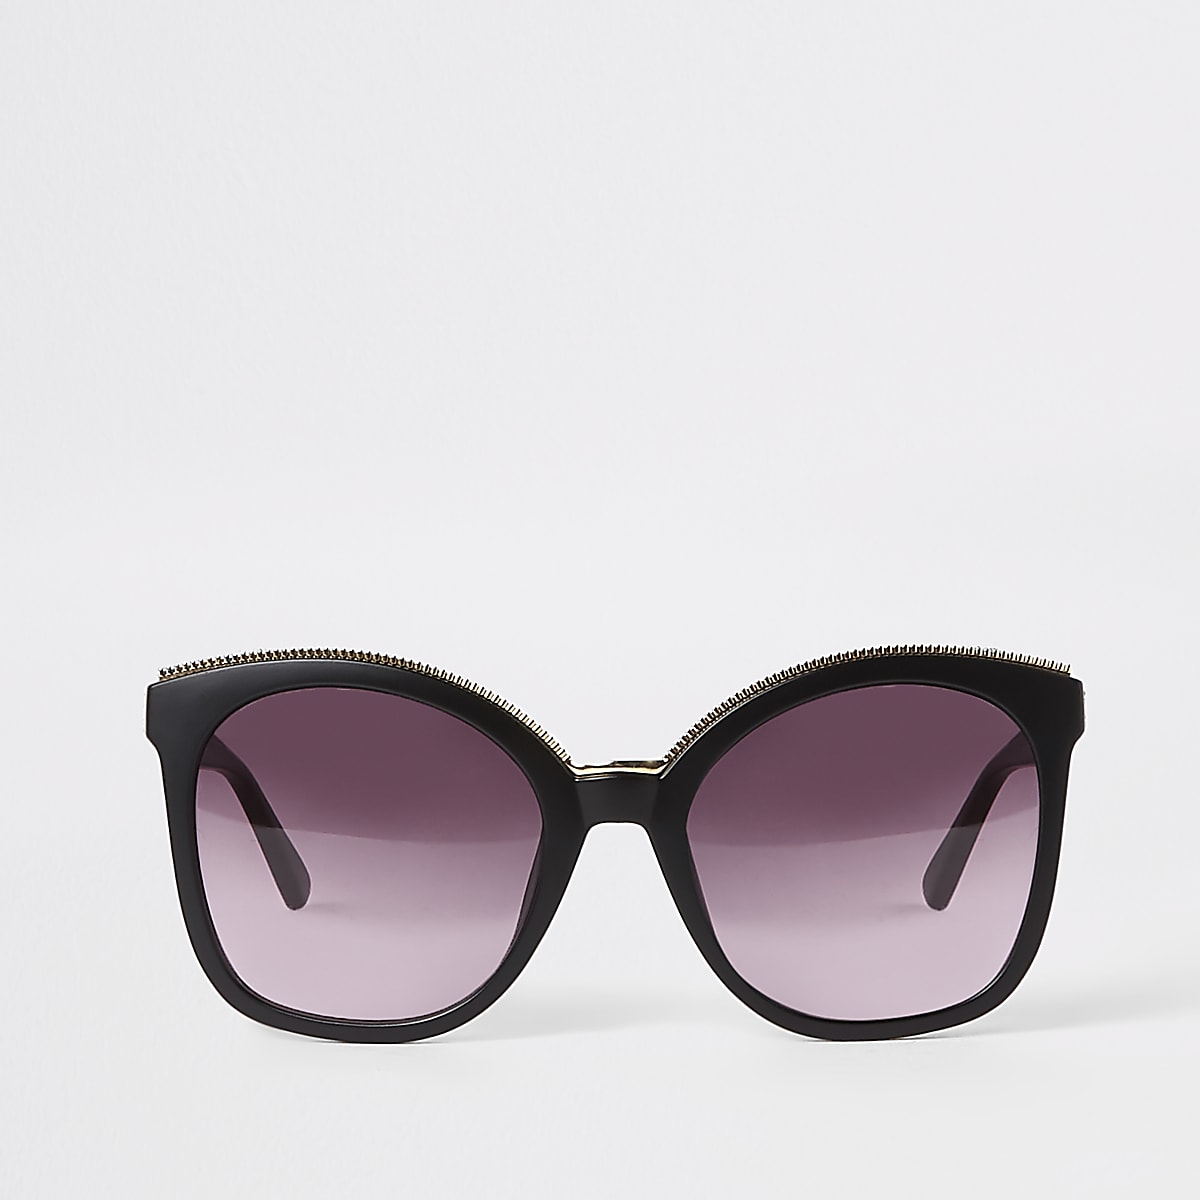 Black gold trim matte glam sunglasses